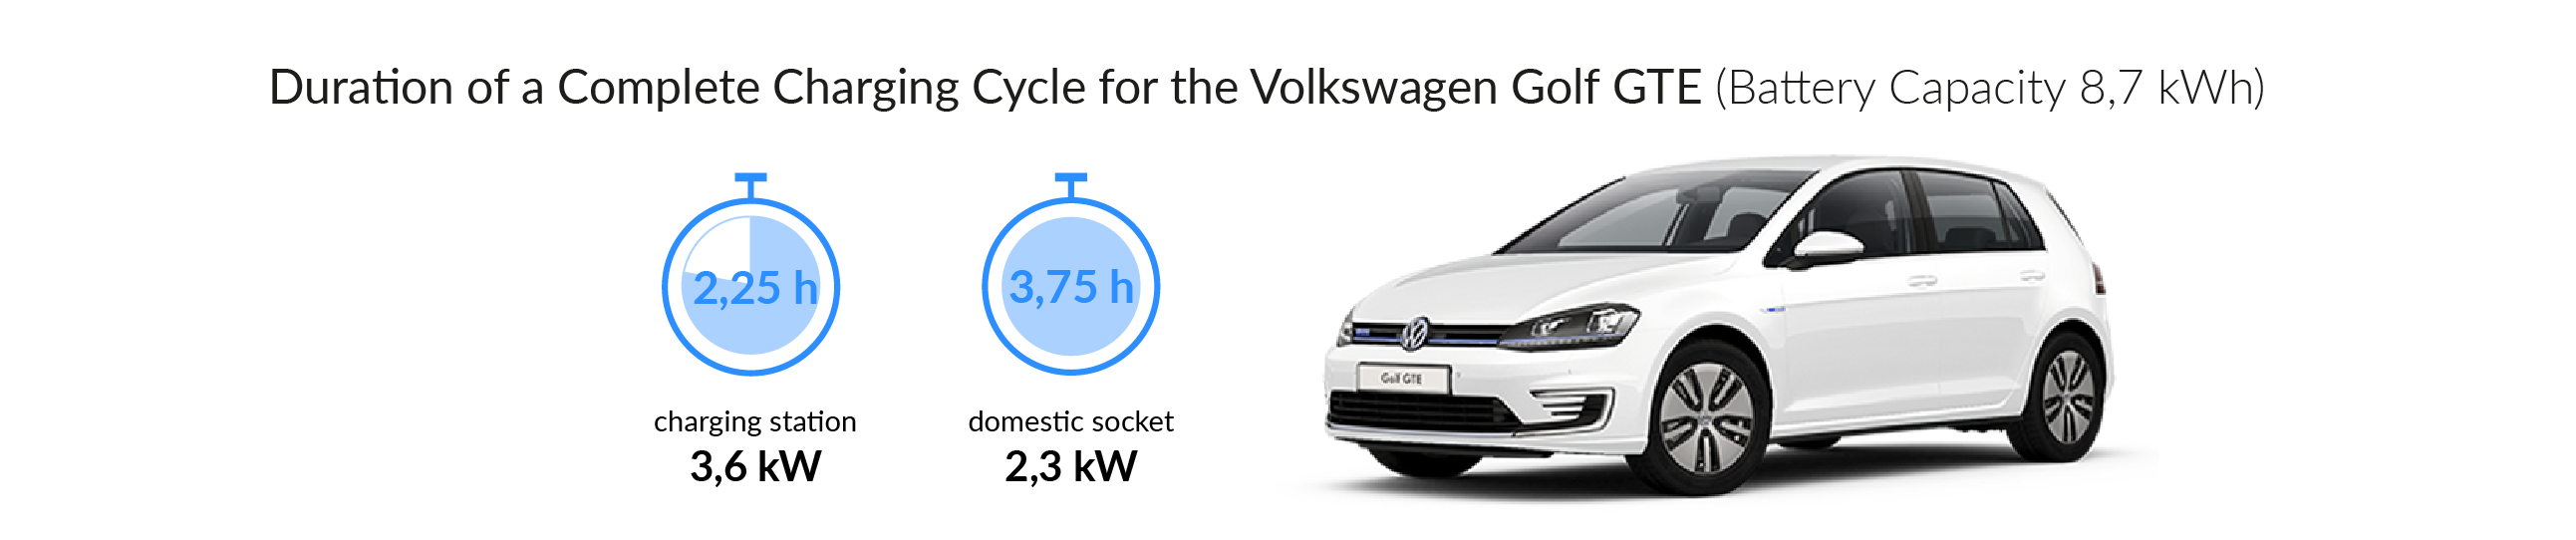 Charging time for your Volkswagen Golf GTE